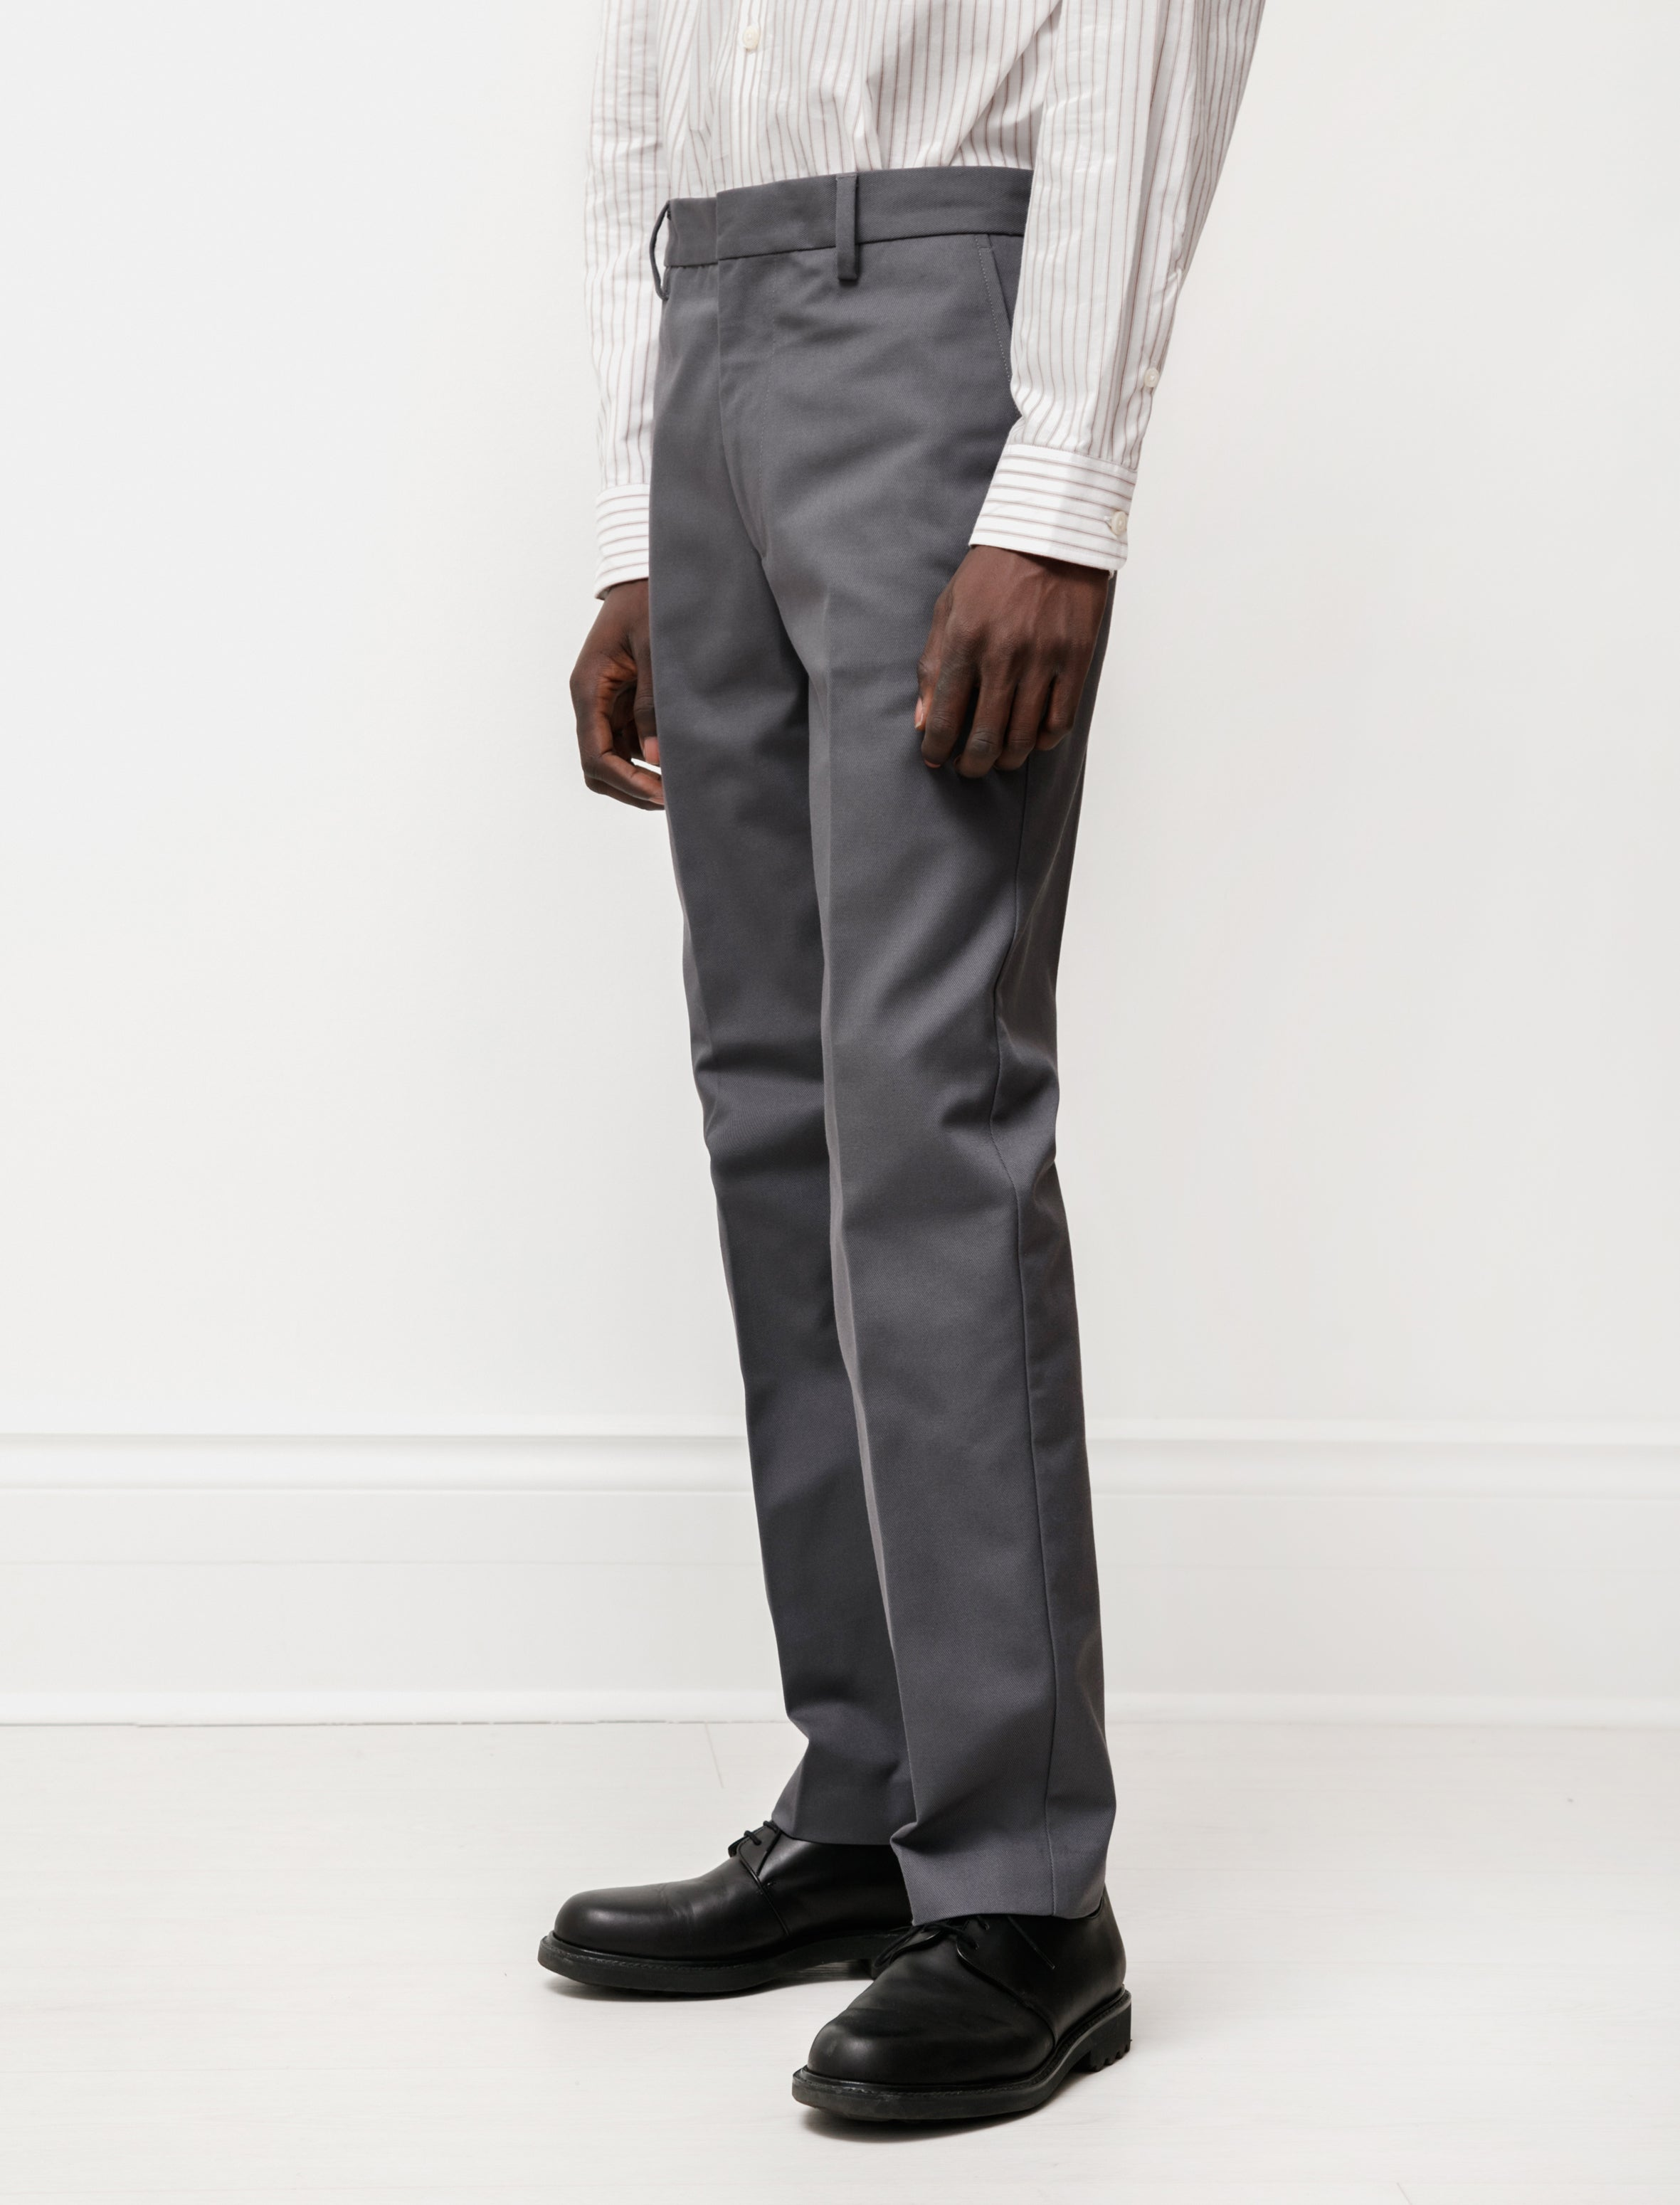 Acne Studios Trousers Cotton Twill Grey